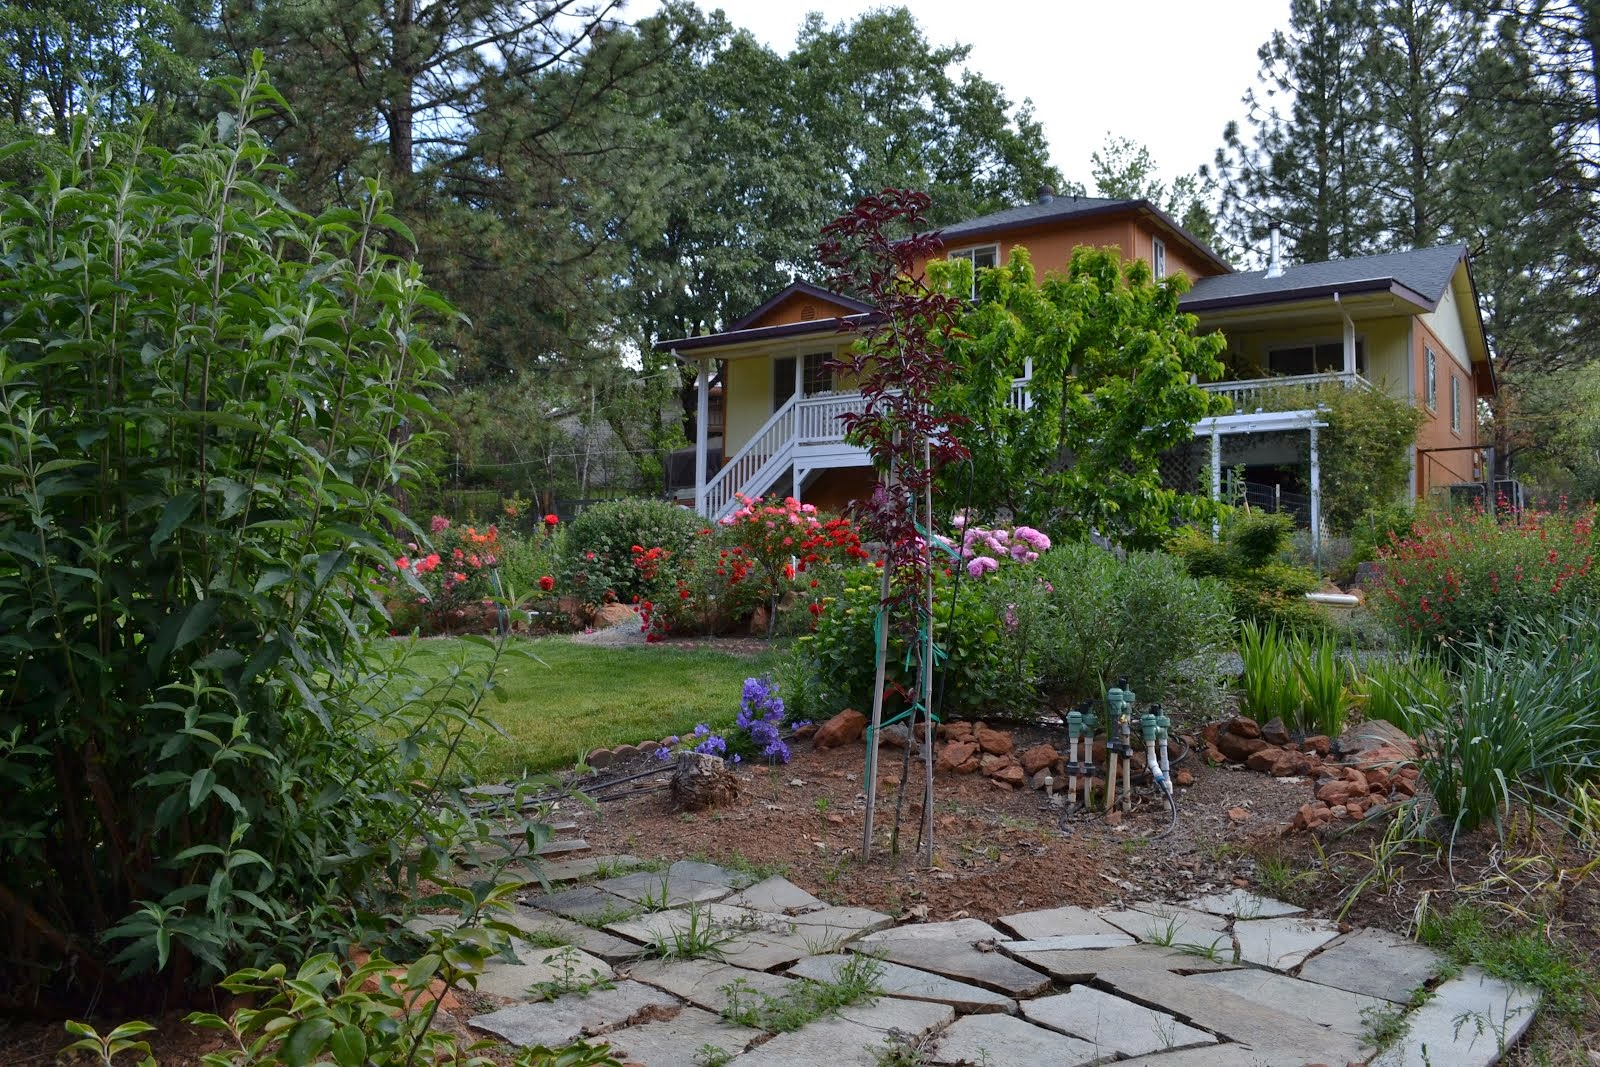 ALTA SIERRA HOME FOR SALE - GARDENER'S DREAM - PENDING